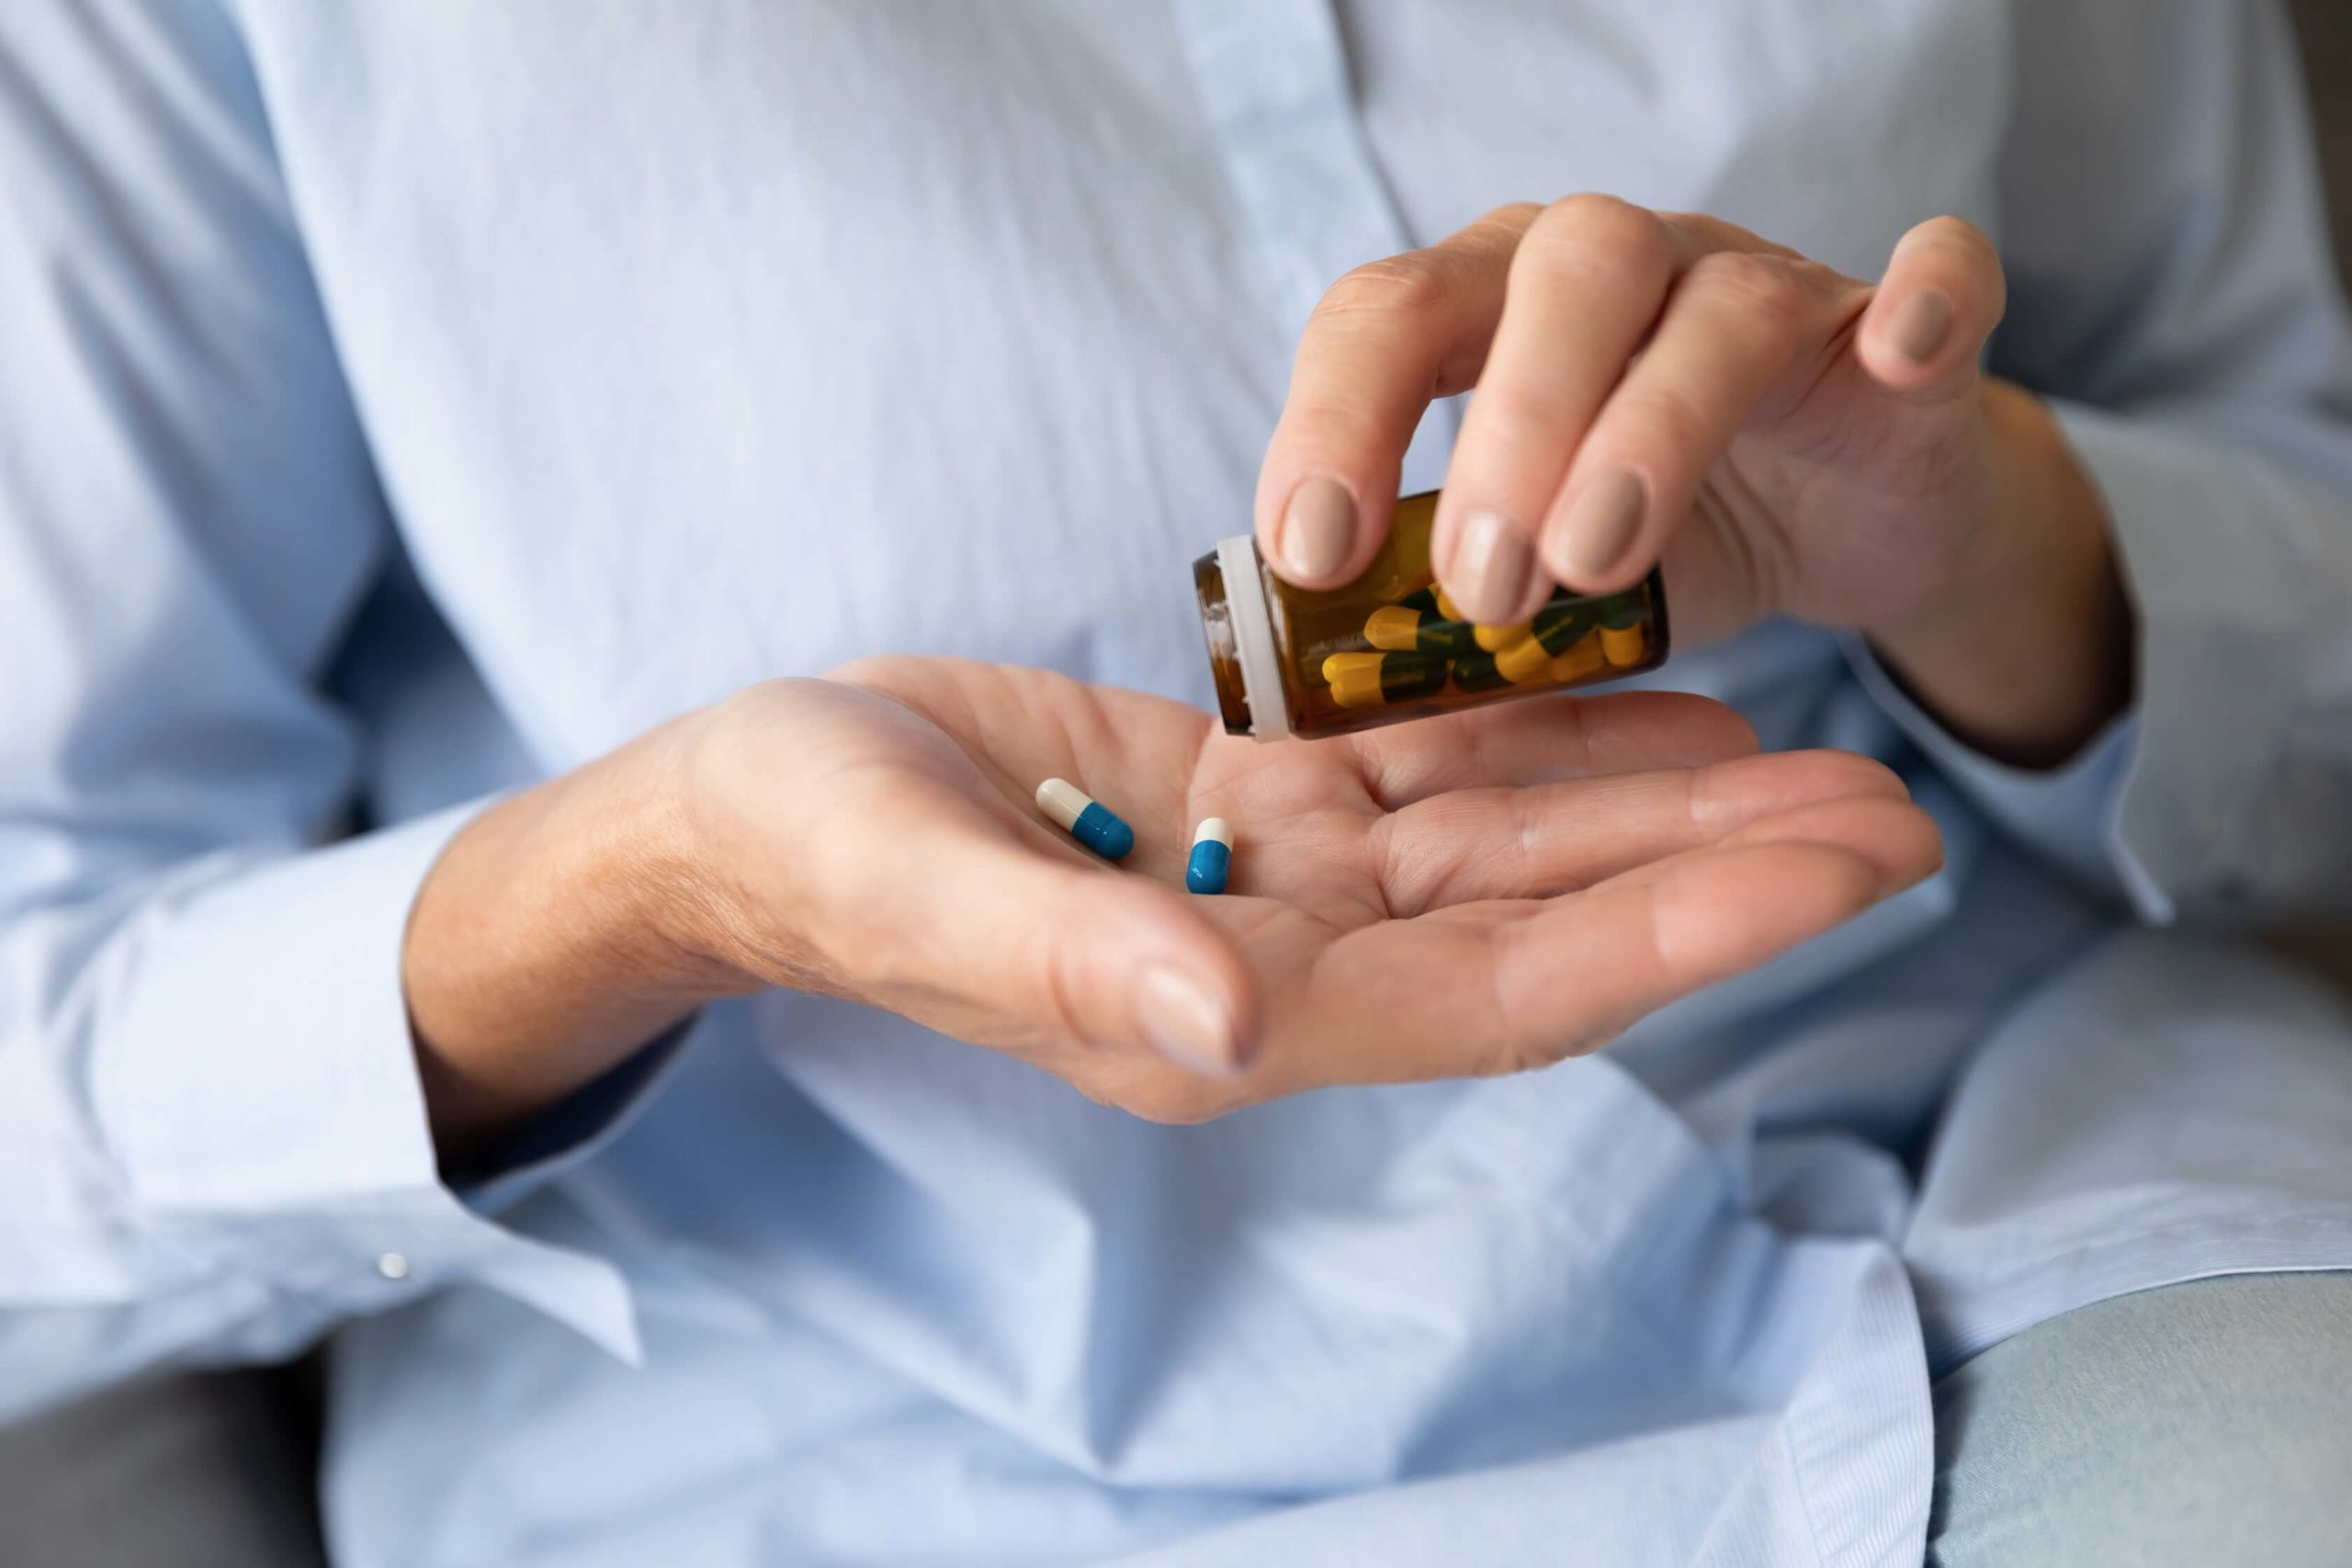 Person tipping a capsule of pills into their hand